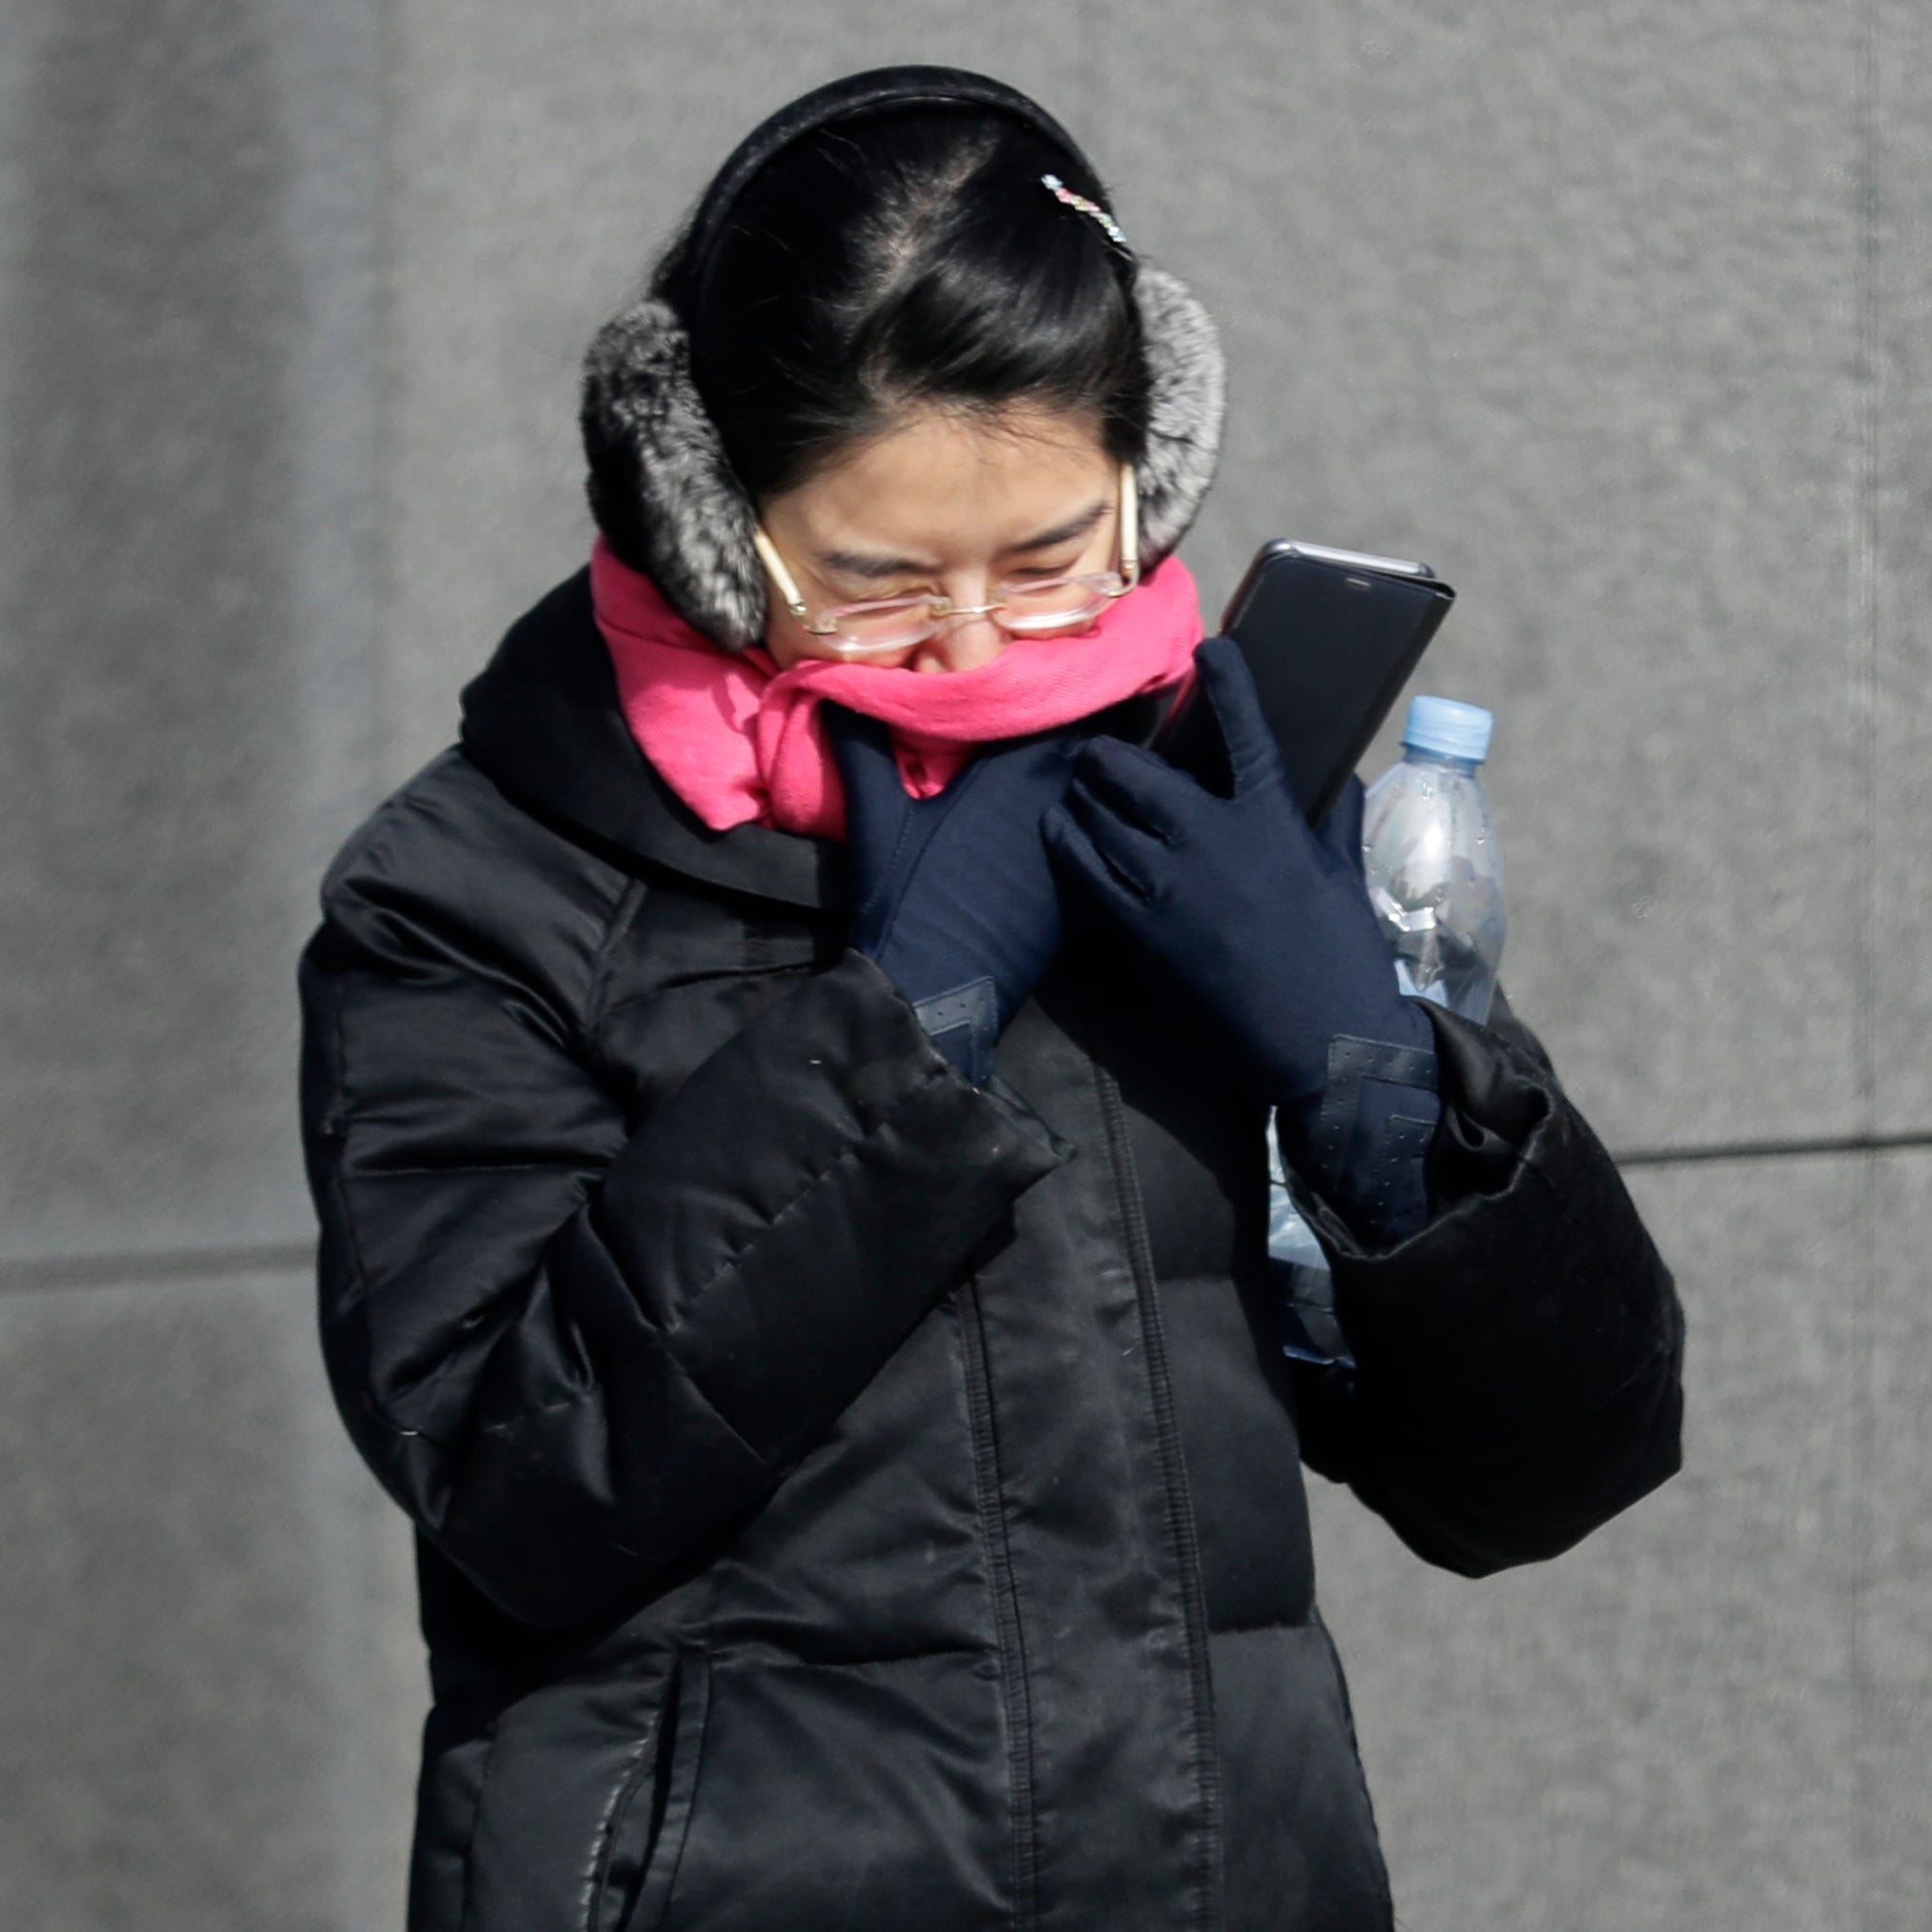 A woman is bundled up against the cold in downtown Chicago, Jan. 27, 2019.